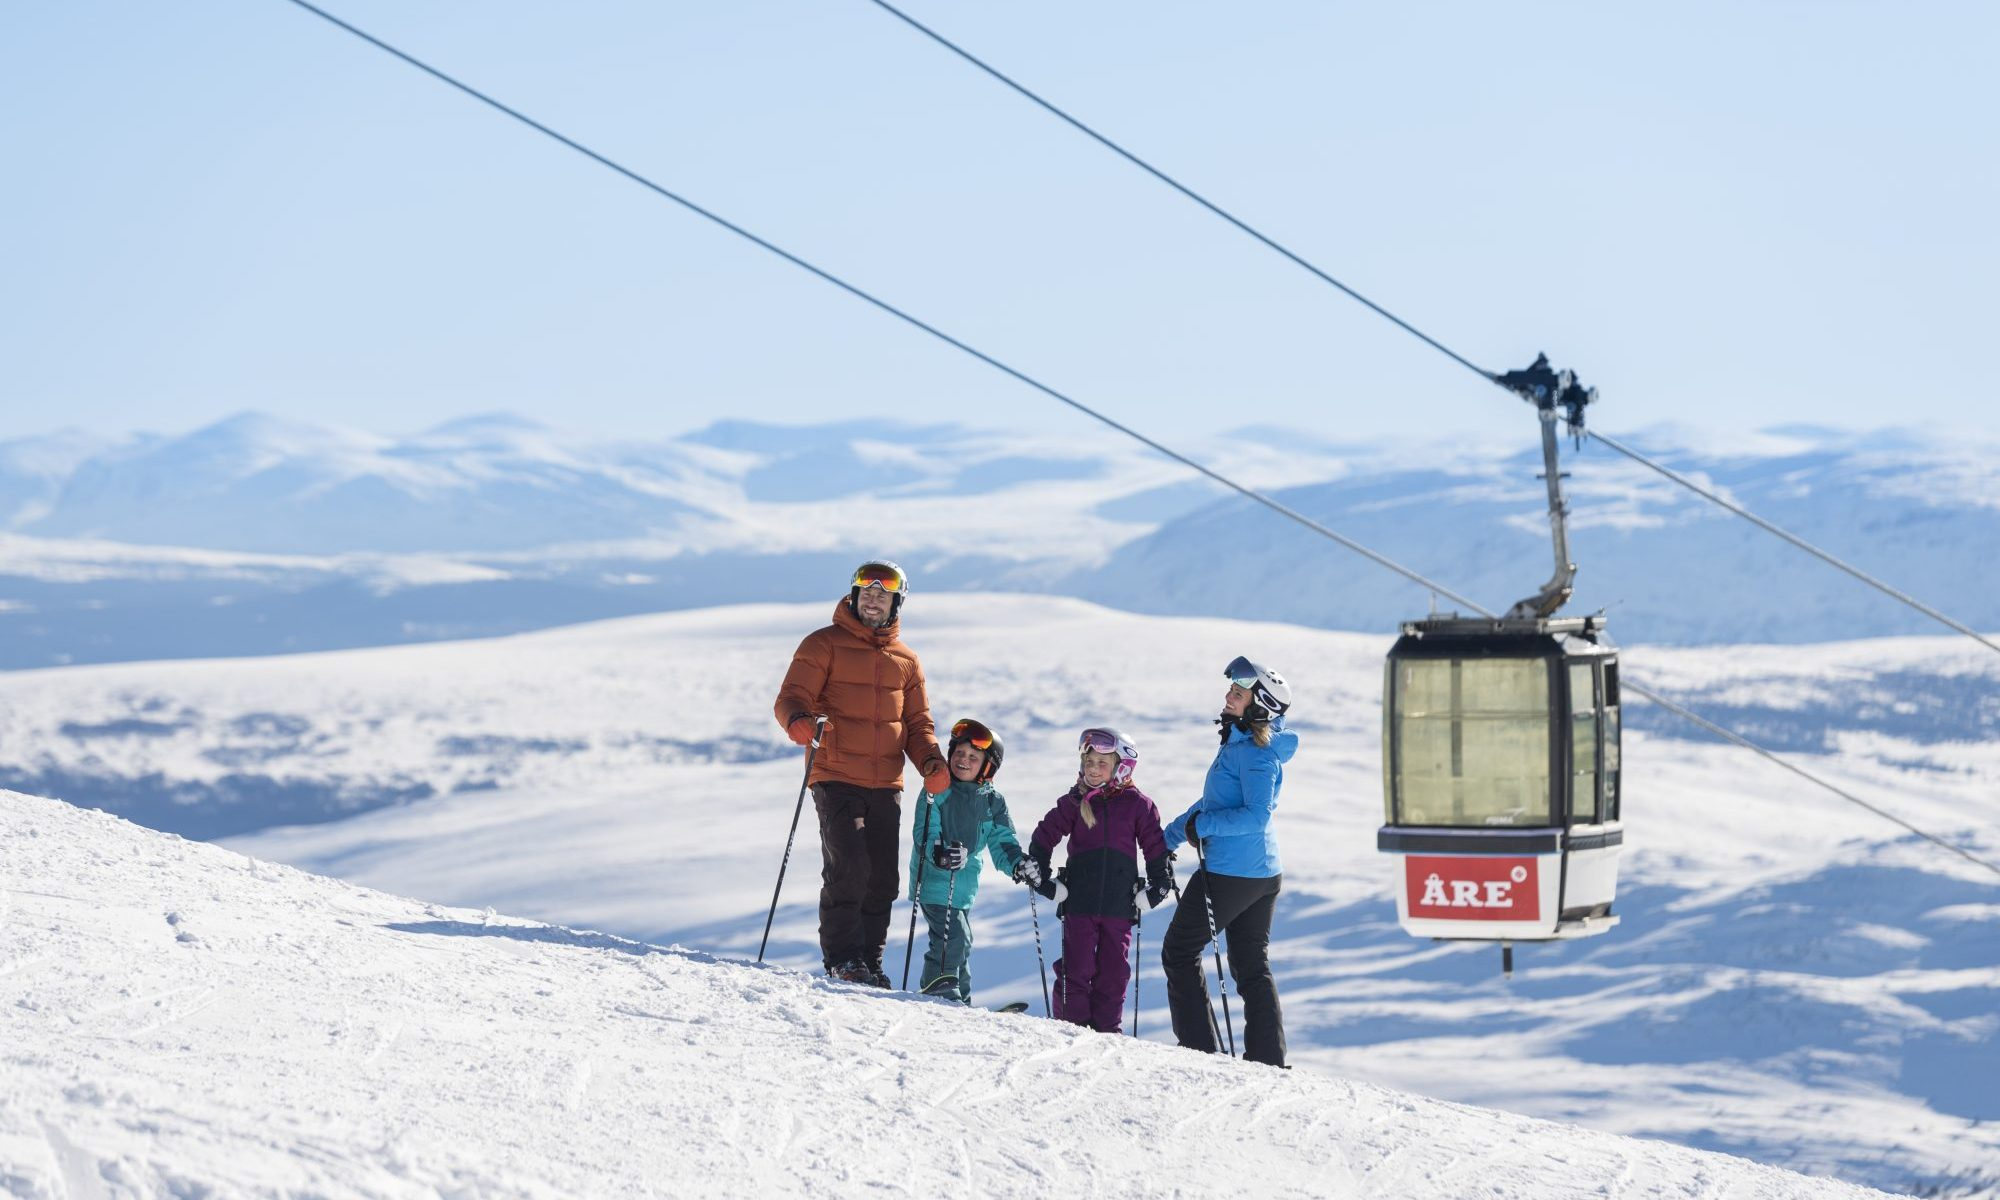 A familie in Åre. Photo courtesy SkiStar. SkiStar showcases record results for the first half of 2018/19.